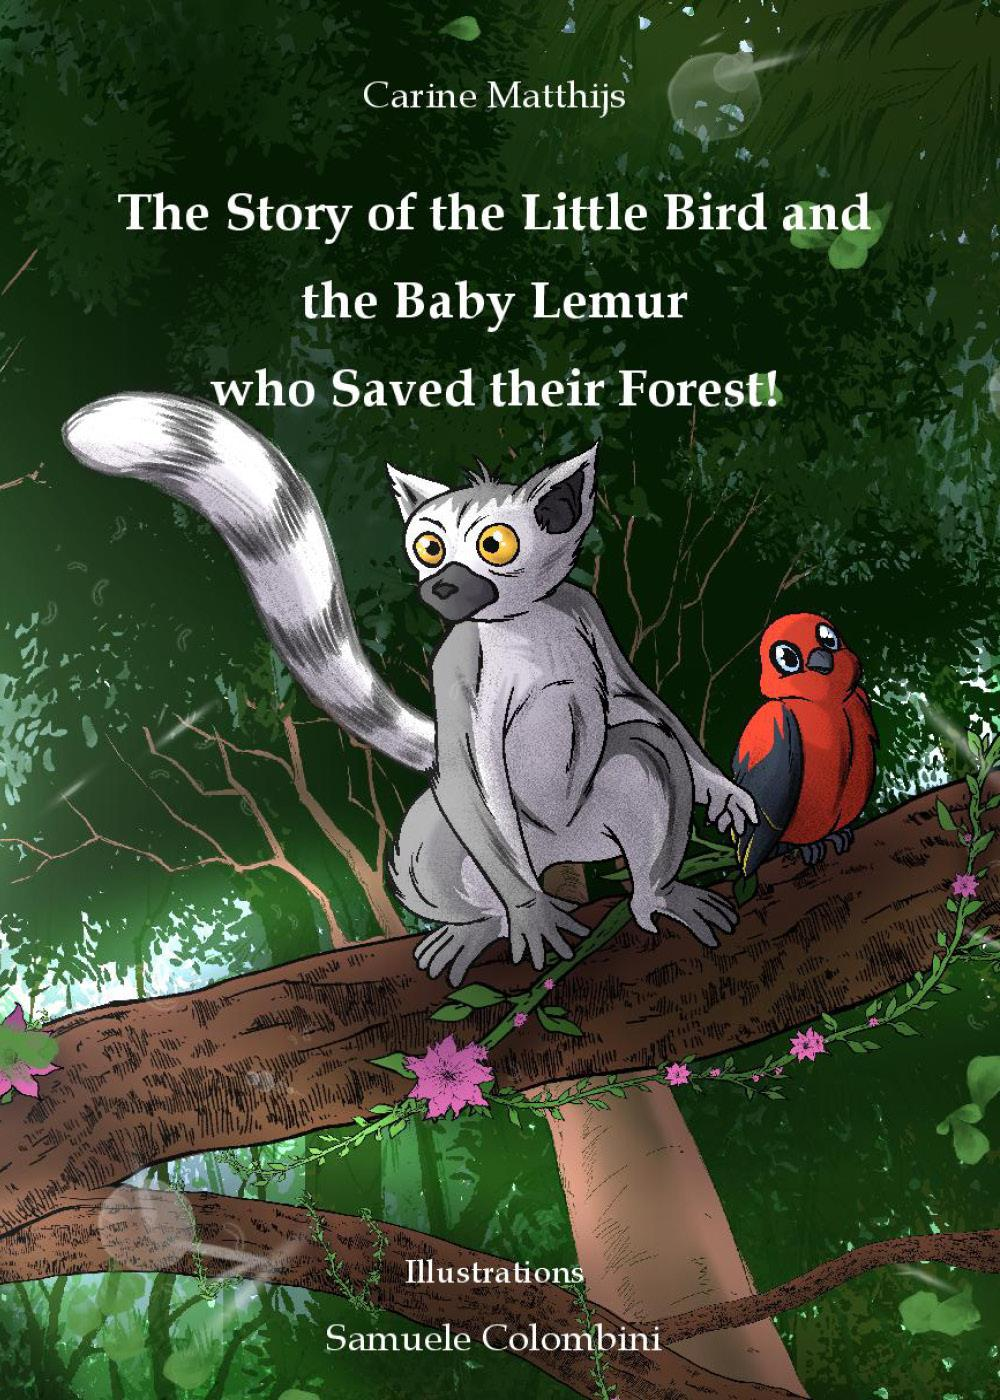 The story of the little bird and the baby lemur who saved their forest!